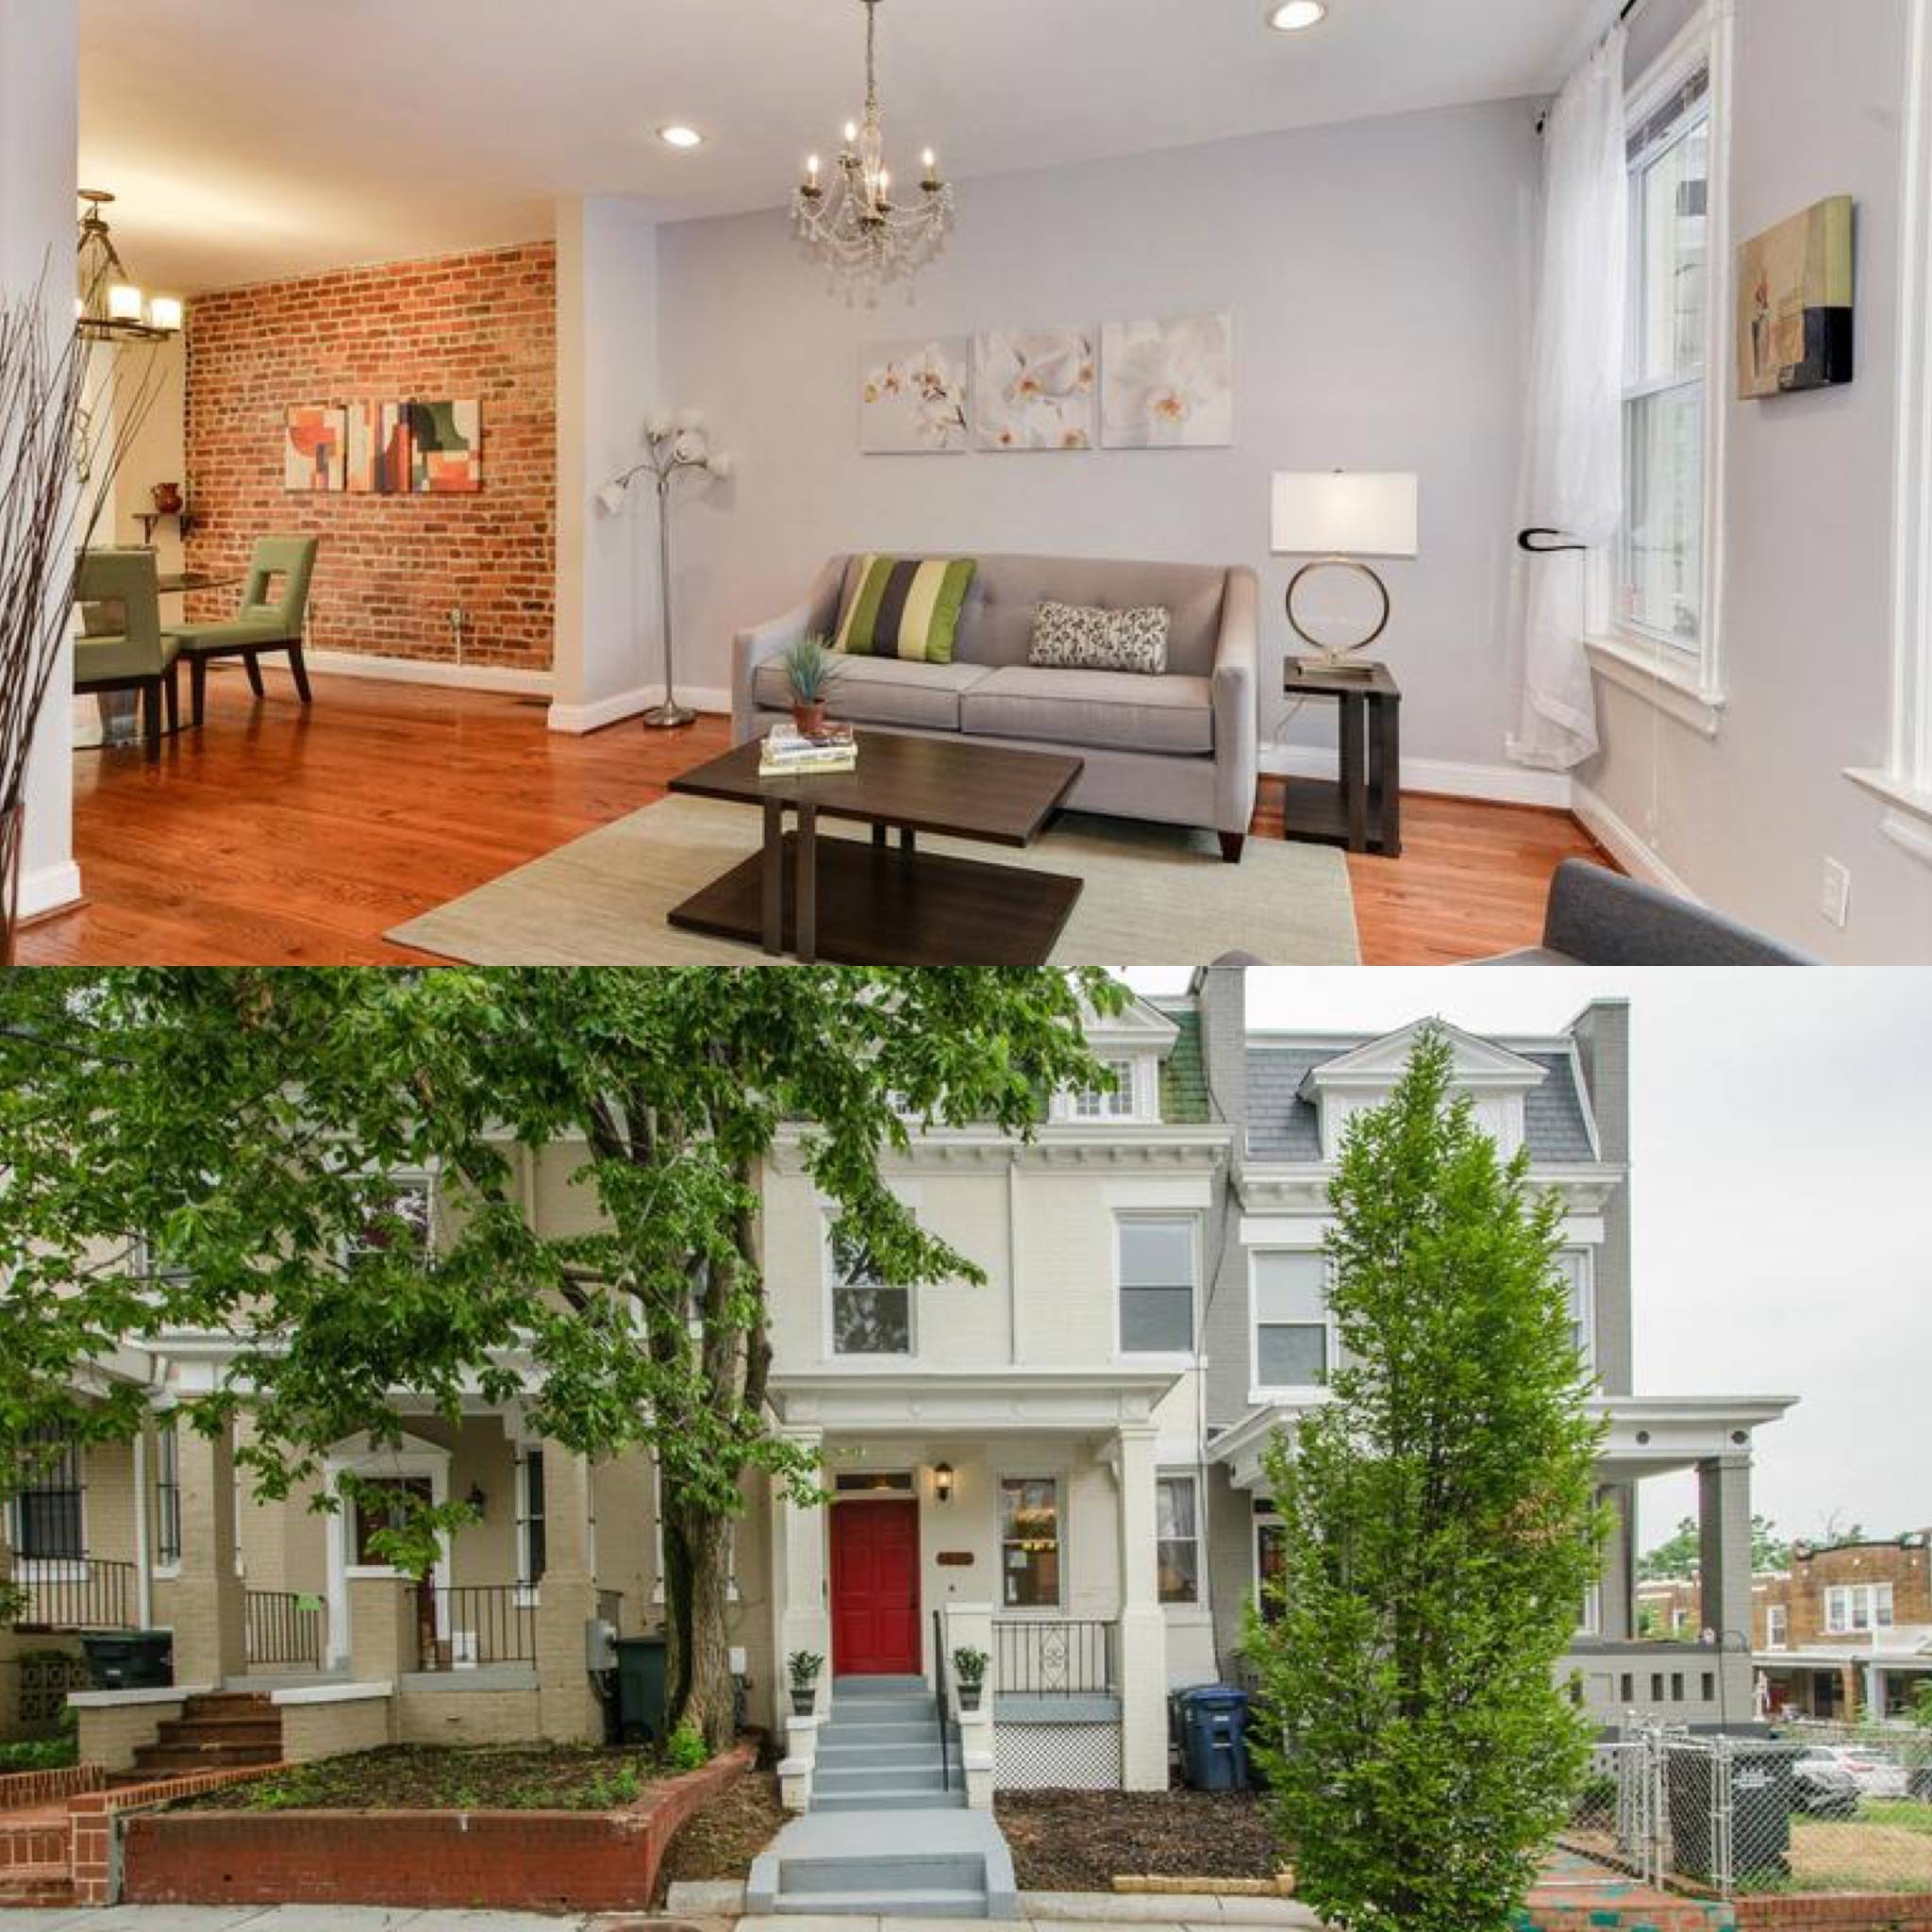 1925 Summit Pl NE, a 3-Bed/3.5-Bath with three levels, sold for $625k in four days.